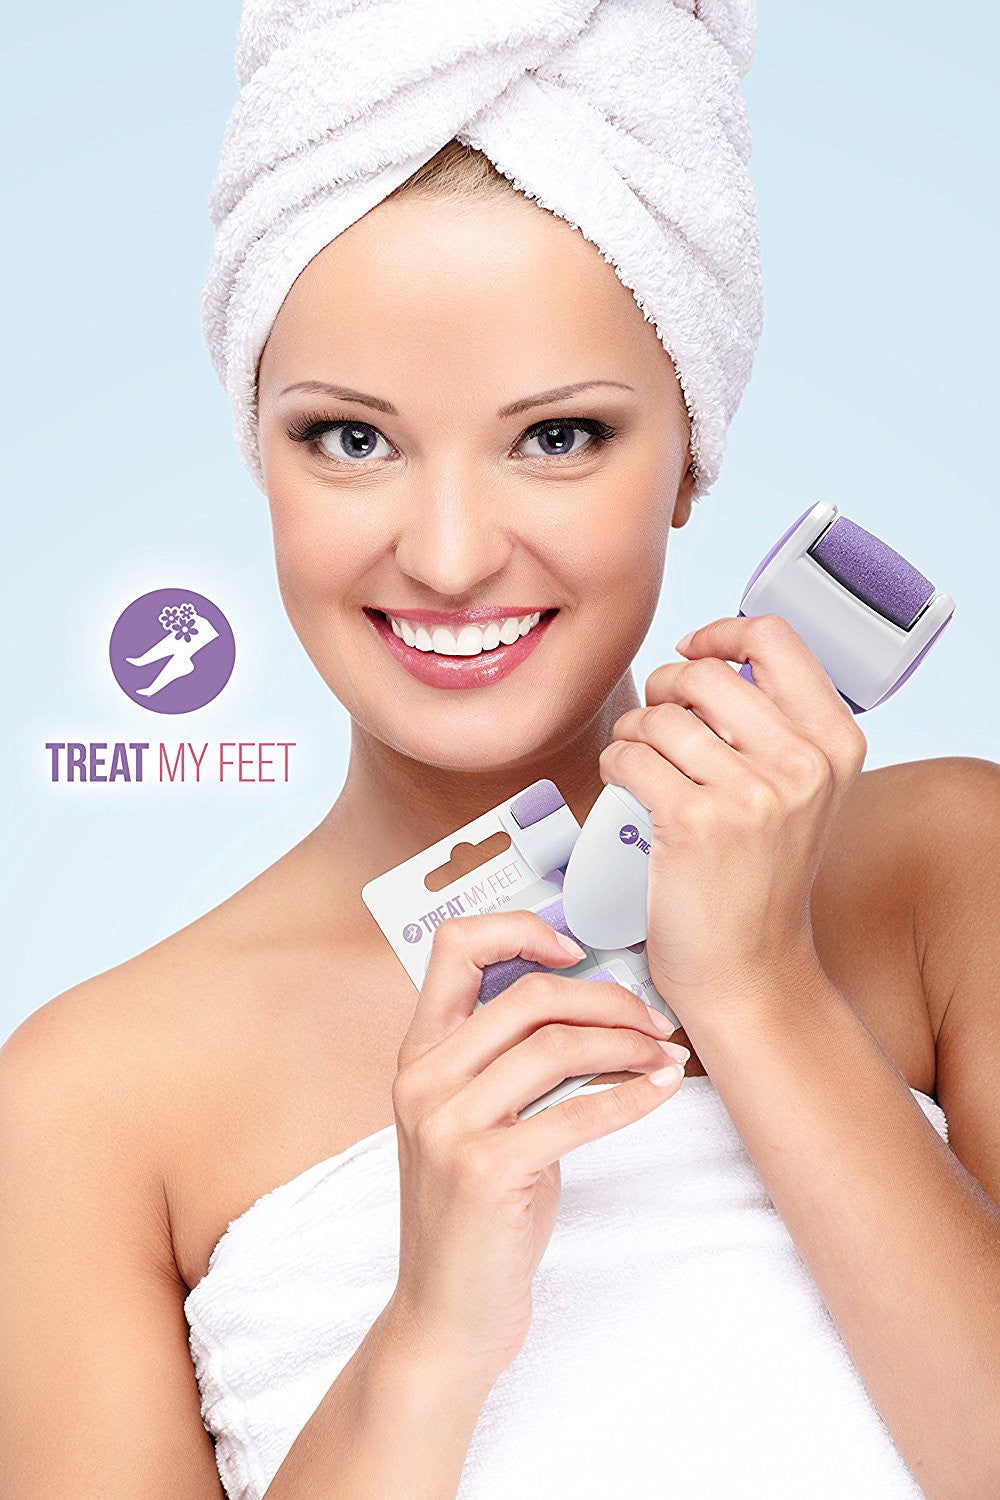 Rechargeable Foot File and Callus Remover by Treat My Feet